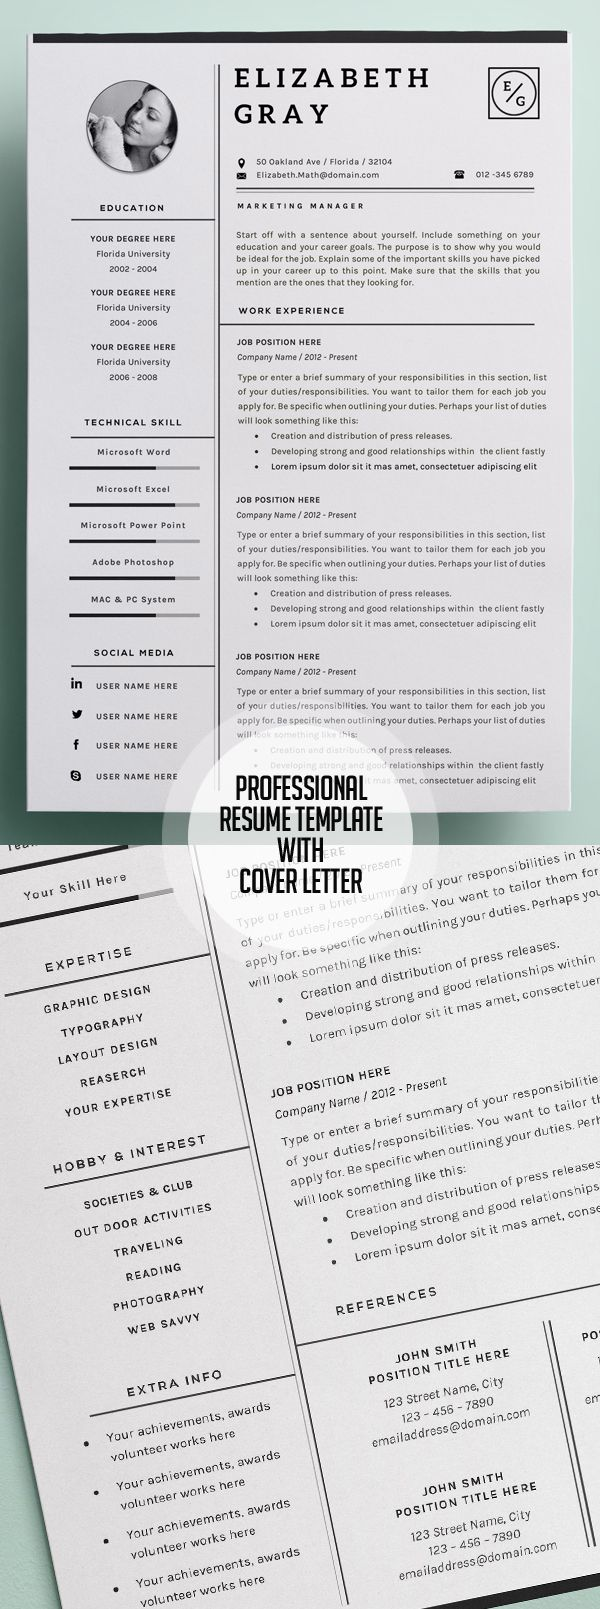 Picnictoimpeachus  Terrific  Resume Ideas On Pinterest  Resume Resume Templates And  With Fair Professional And Modern Resume Template With Page Cover Cvtemplate With Archaic Writing An Objective For A Resume Also Cashier Duties Resume In Addition Internship Resume Objective And Do You Put References On A Resume As Well As Freelance Makeup Artist Resume Additionally Difference Between Cover Letter And Resume From Pinterestcom With Picnictoimpeachus  Fair  Resume Ideas On Pinterest  Resume Resume Templates And  With Archaic Professional And Modern Resume Template With Page Cover Cvtemplate And Terrific Writing An Objective For A Resume Also Cashier Duties Resume In Addition Internship Resume Objective From Pinterestcom